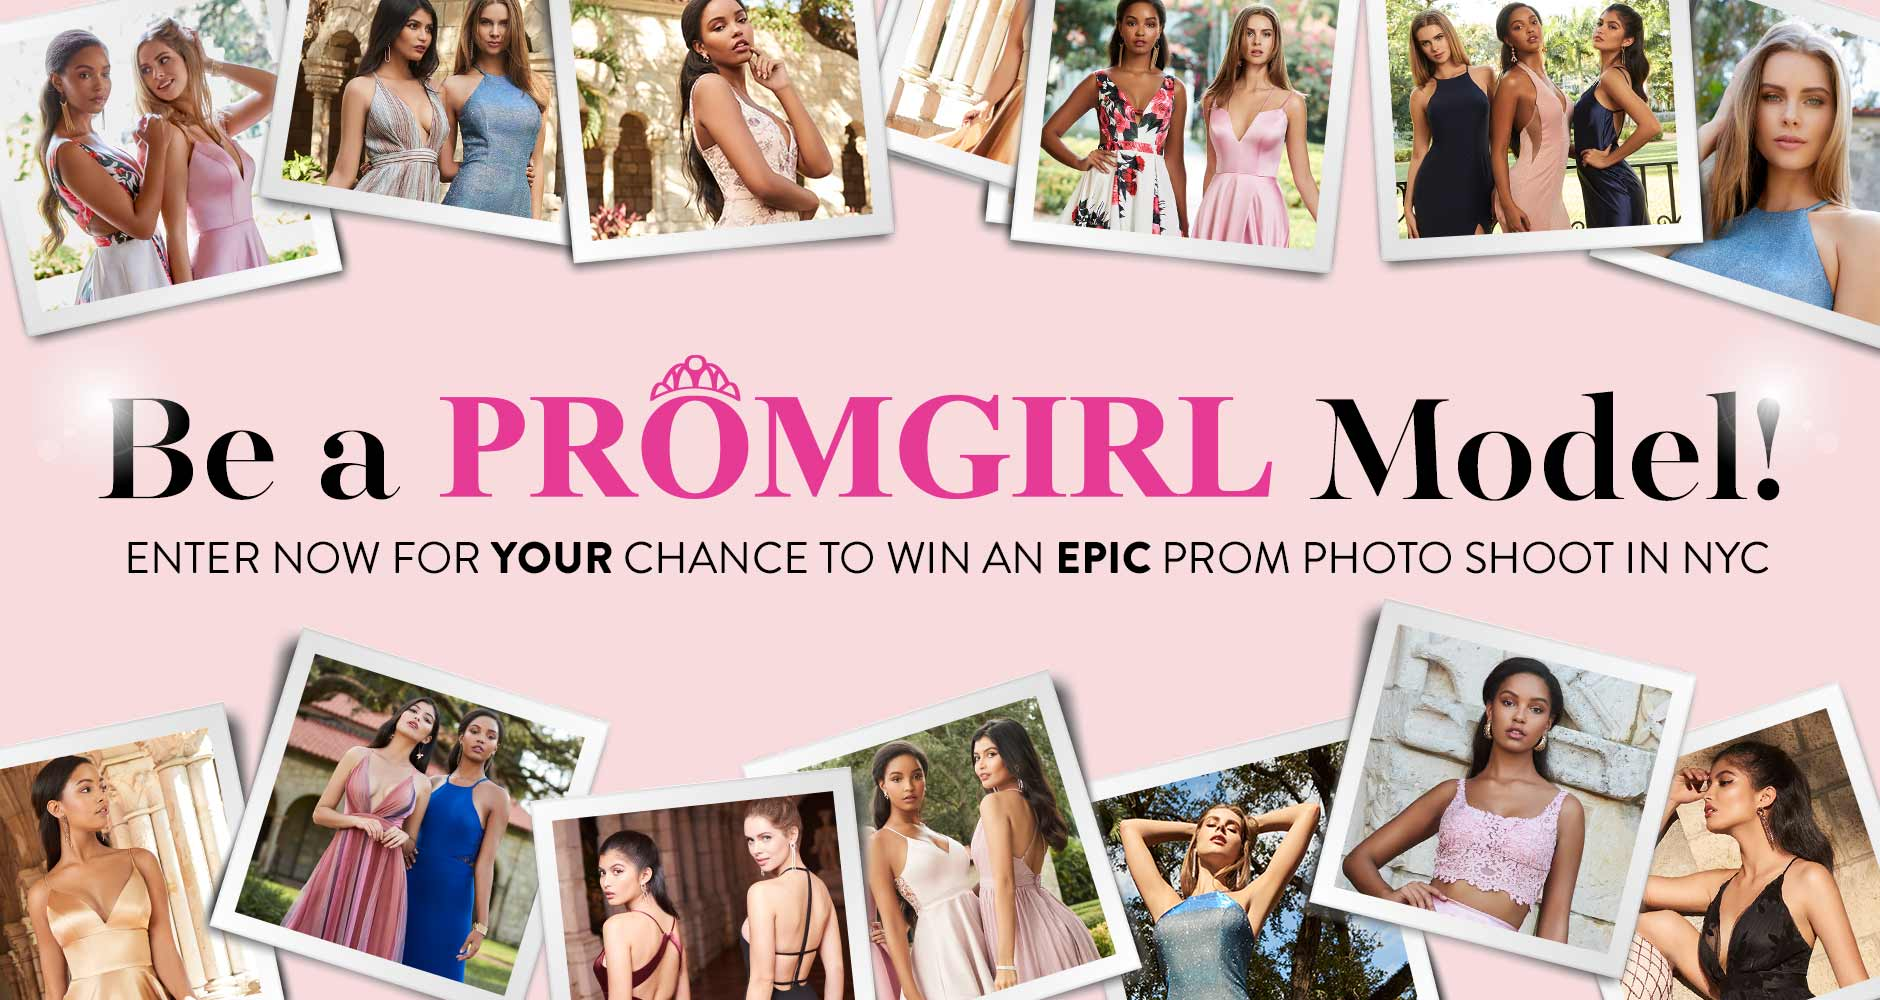 Be a PromGirl Model!